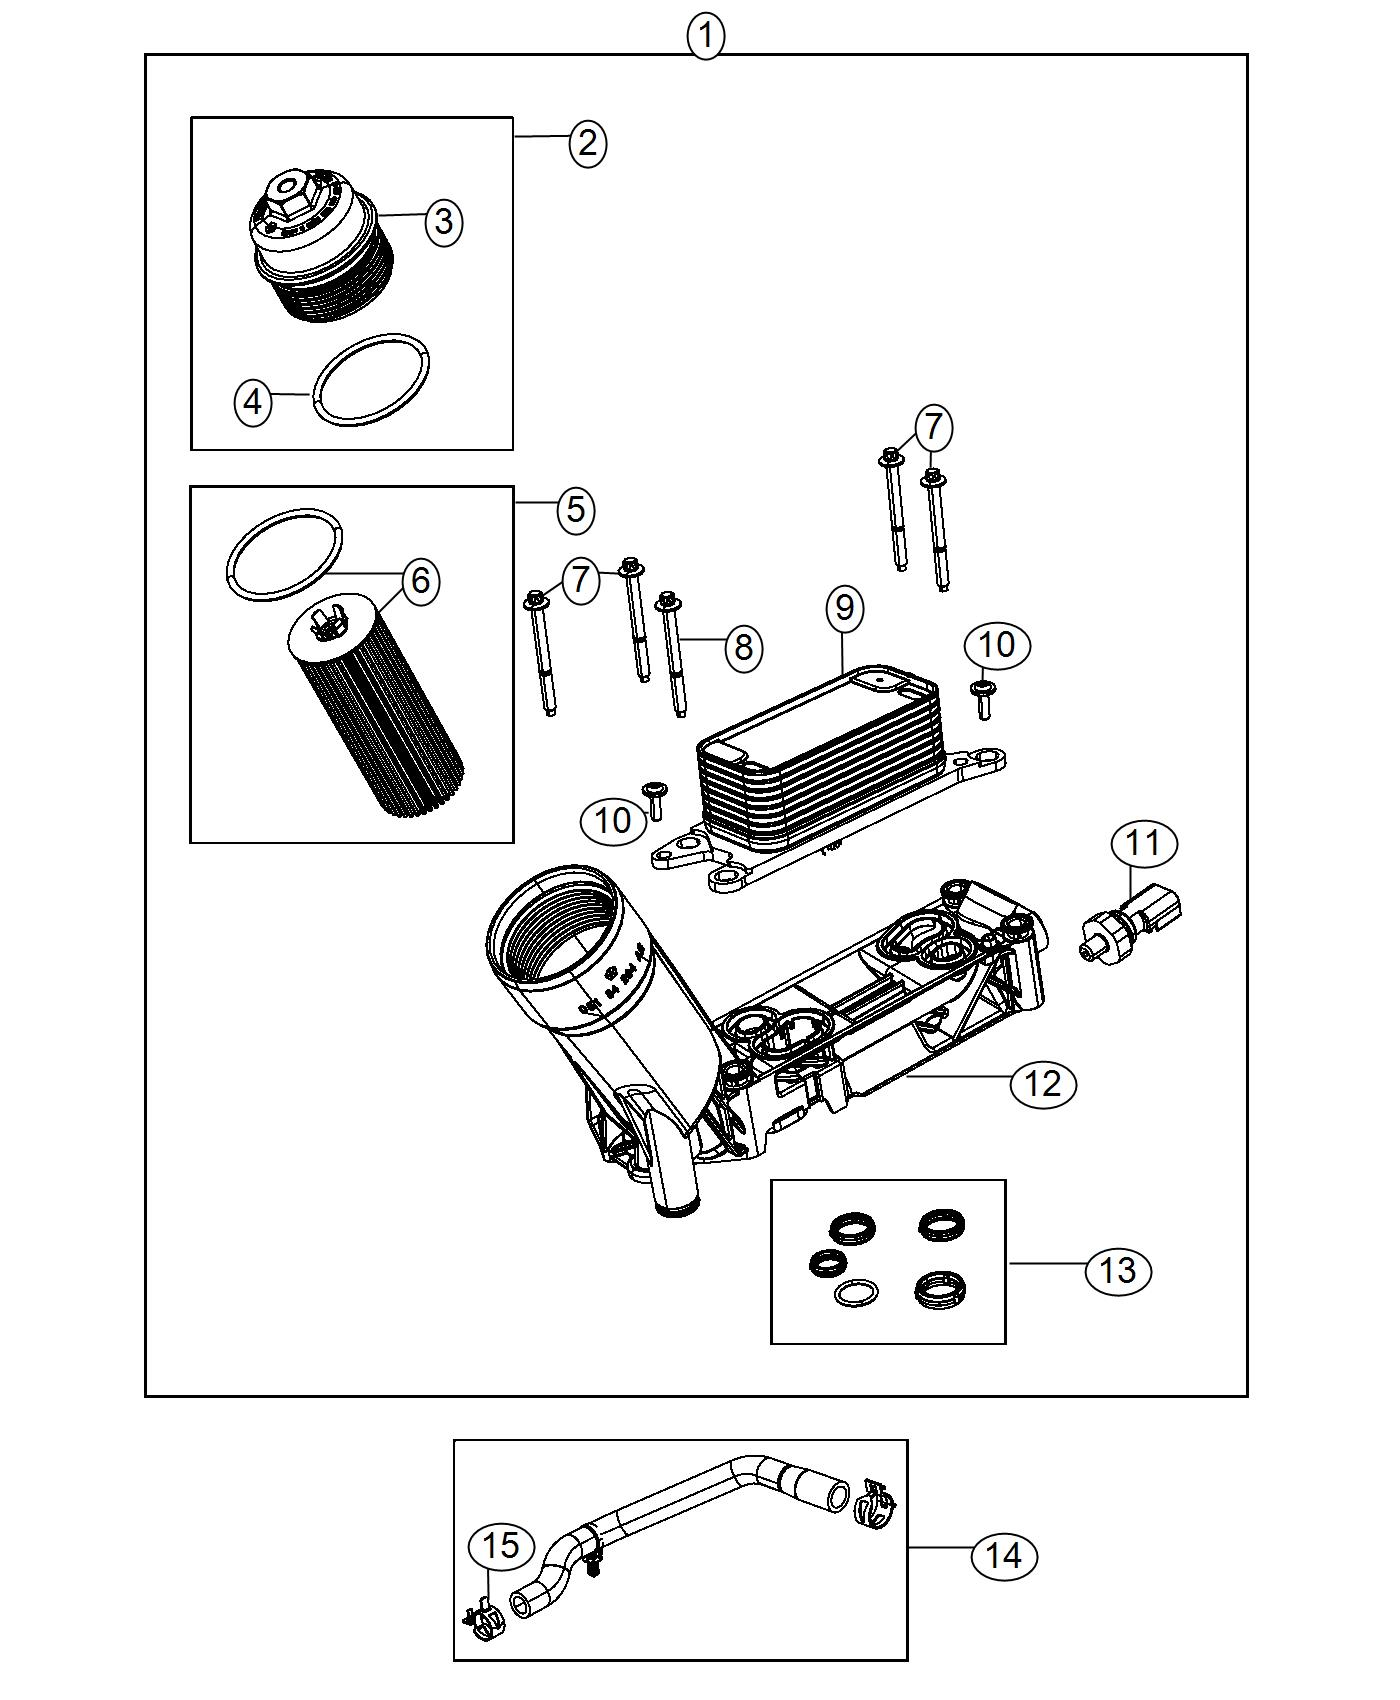 Jeep Wrangler Adapter Engine Oil Filter Adapter